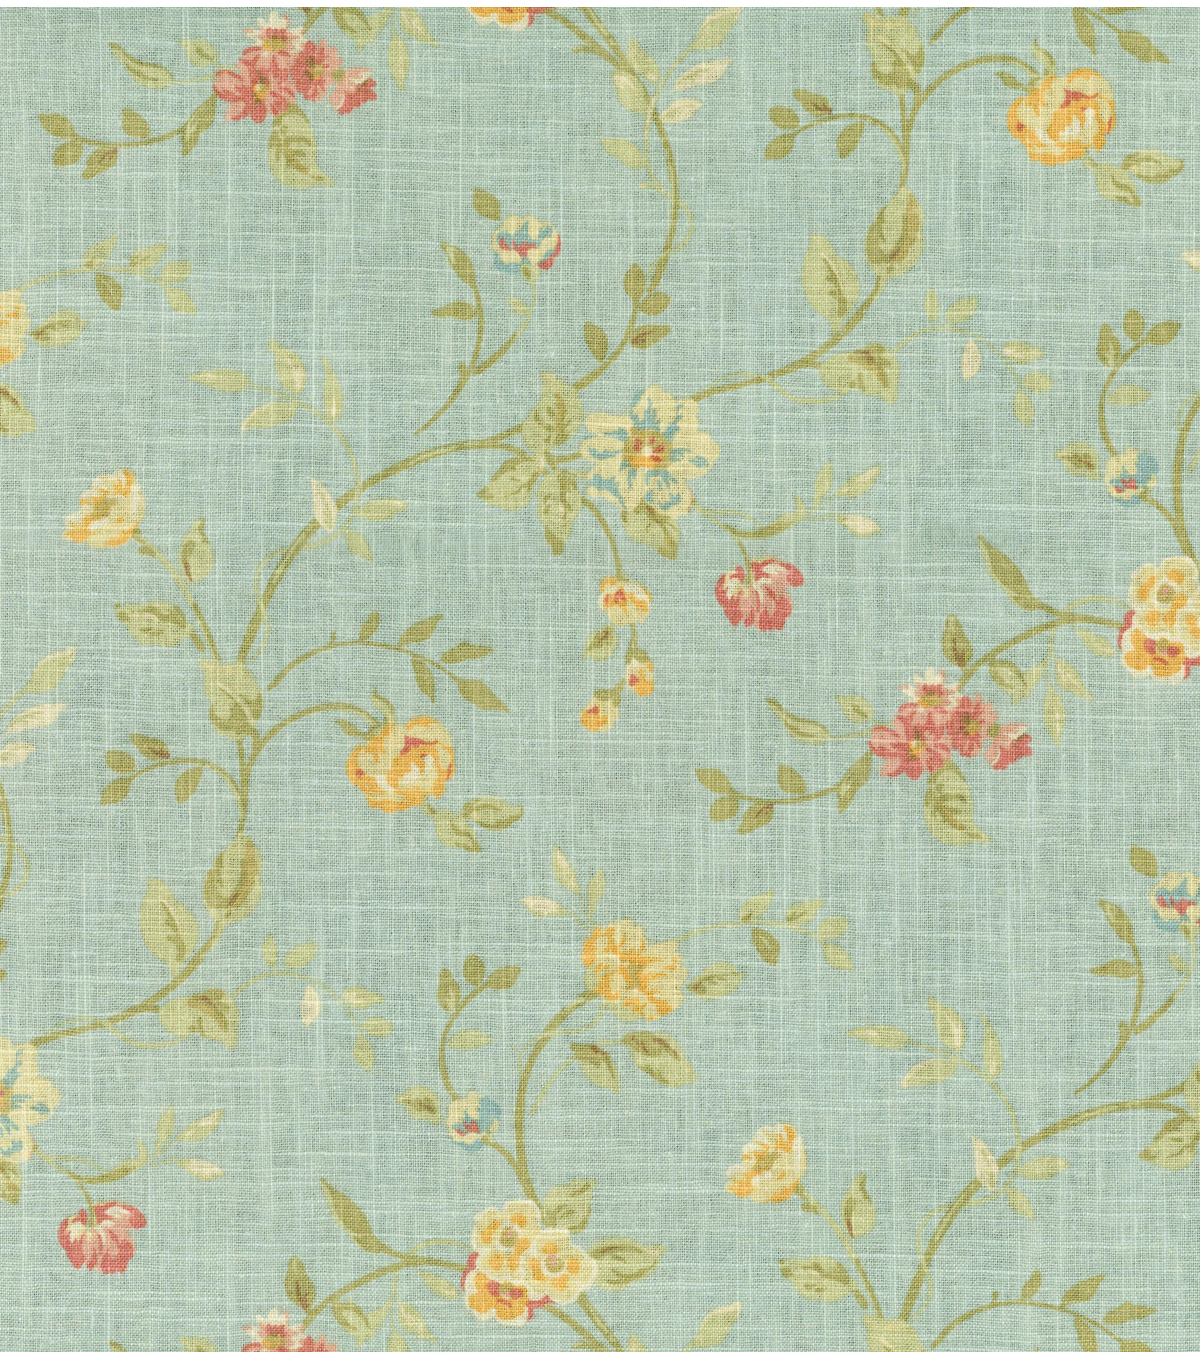 Home Decor 8\u0022x8\u0022 Fabric Swatch-Waverly Garden Glitz Cir Vapor